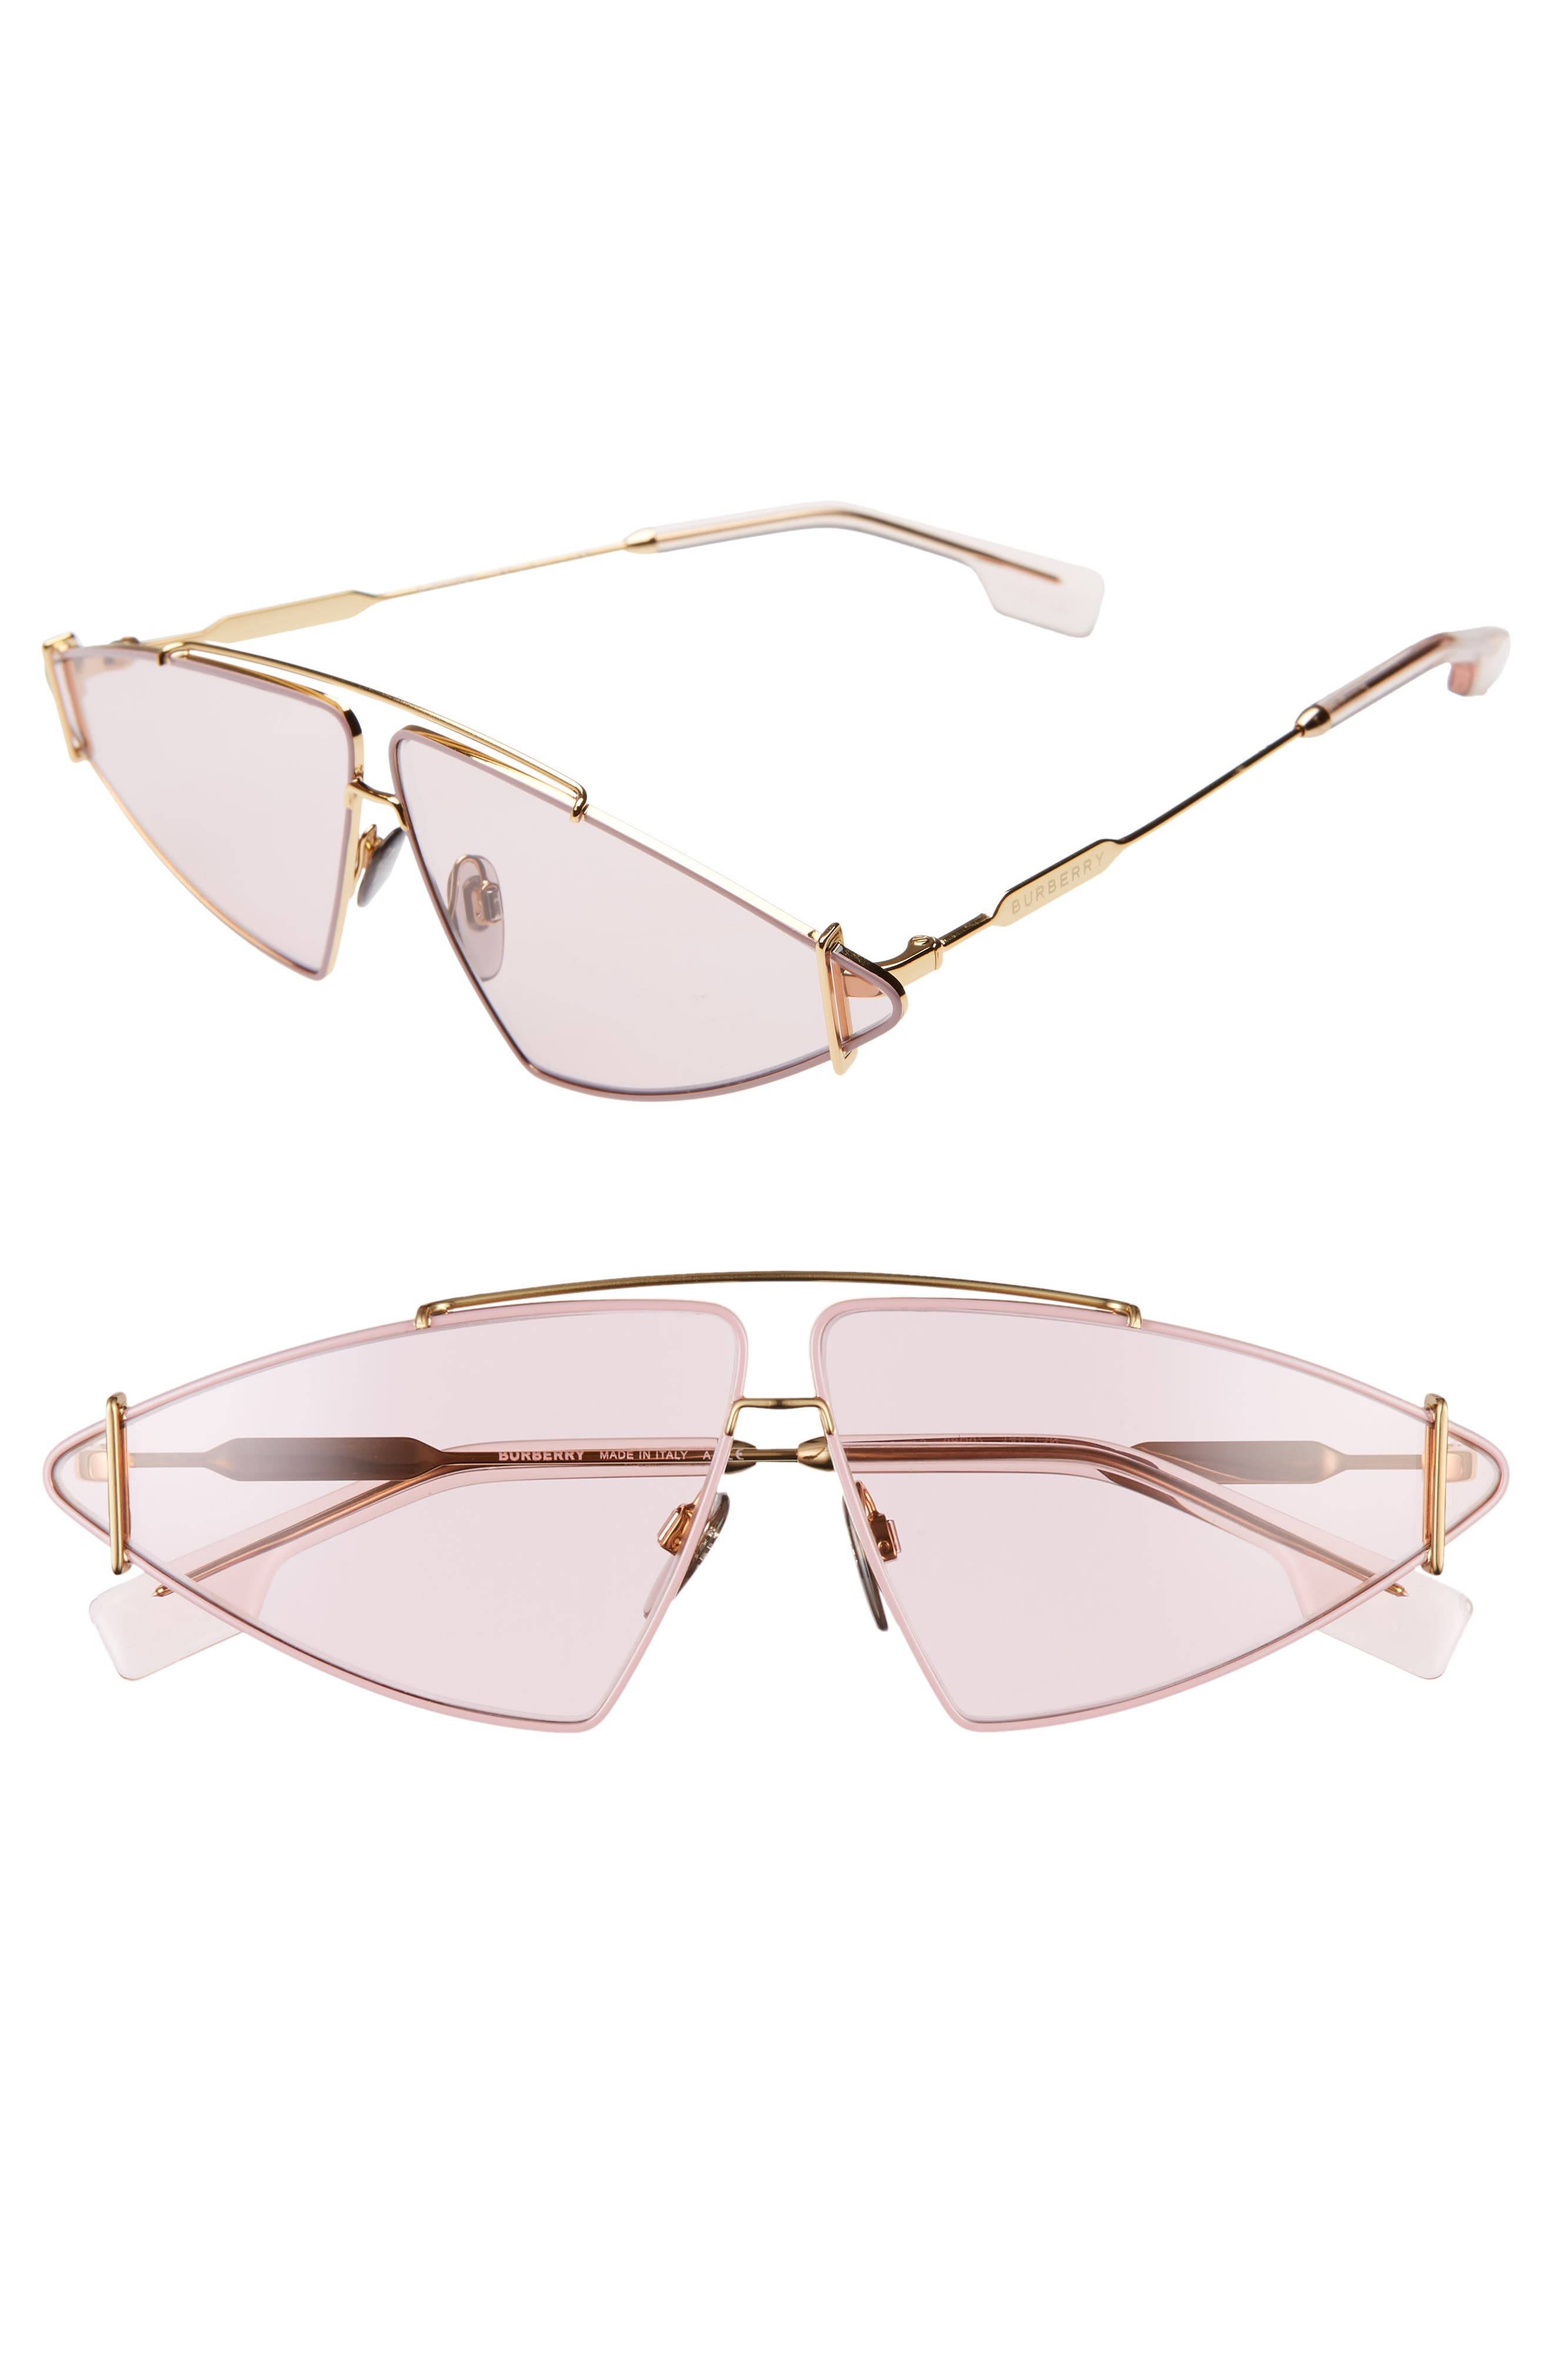 9f1039d3ab6 Burberry Sunglasses for Women